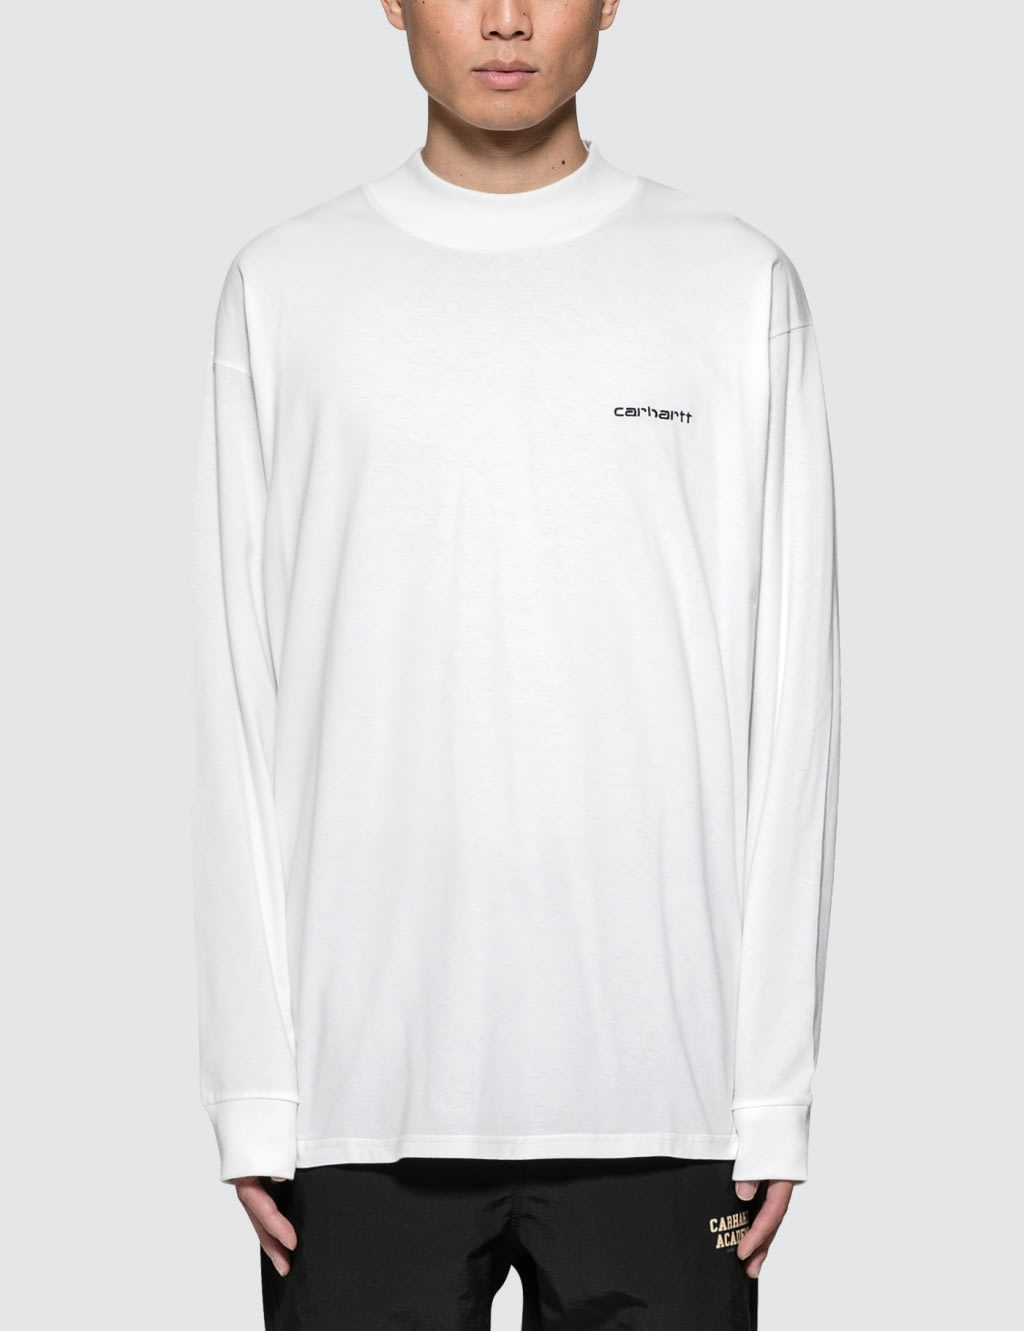 Long Sleeve Base Regular Fit T-Shirt - White Carhartt Work in Progress Clearance Reliable h5EP2py